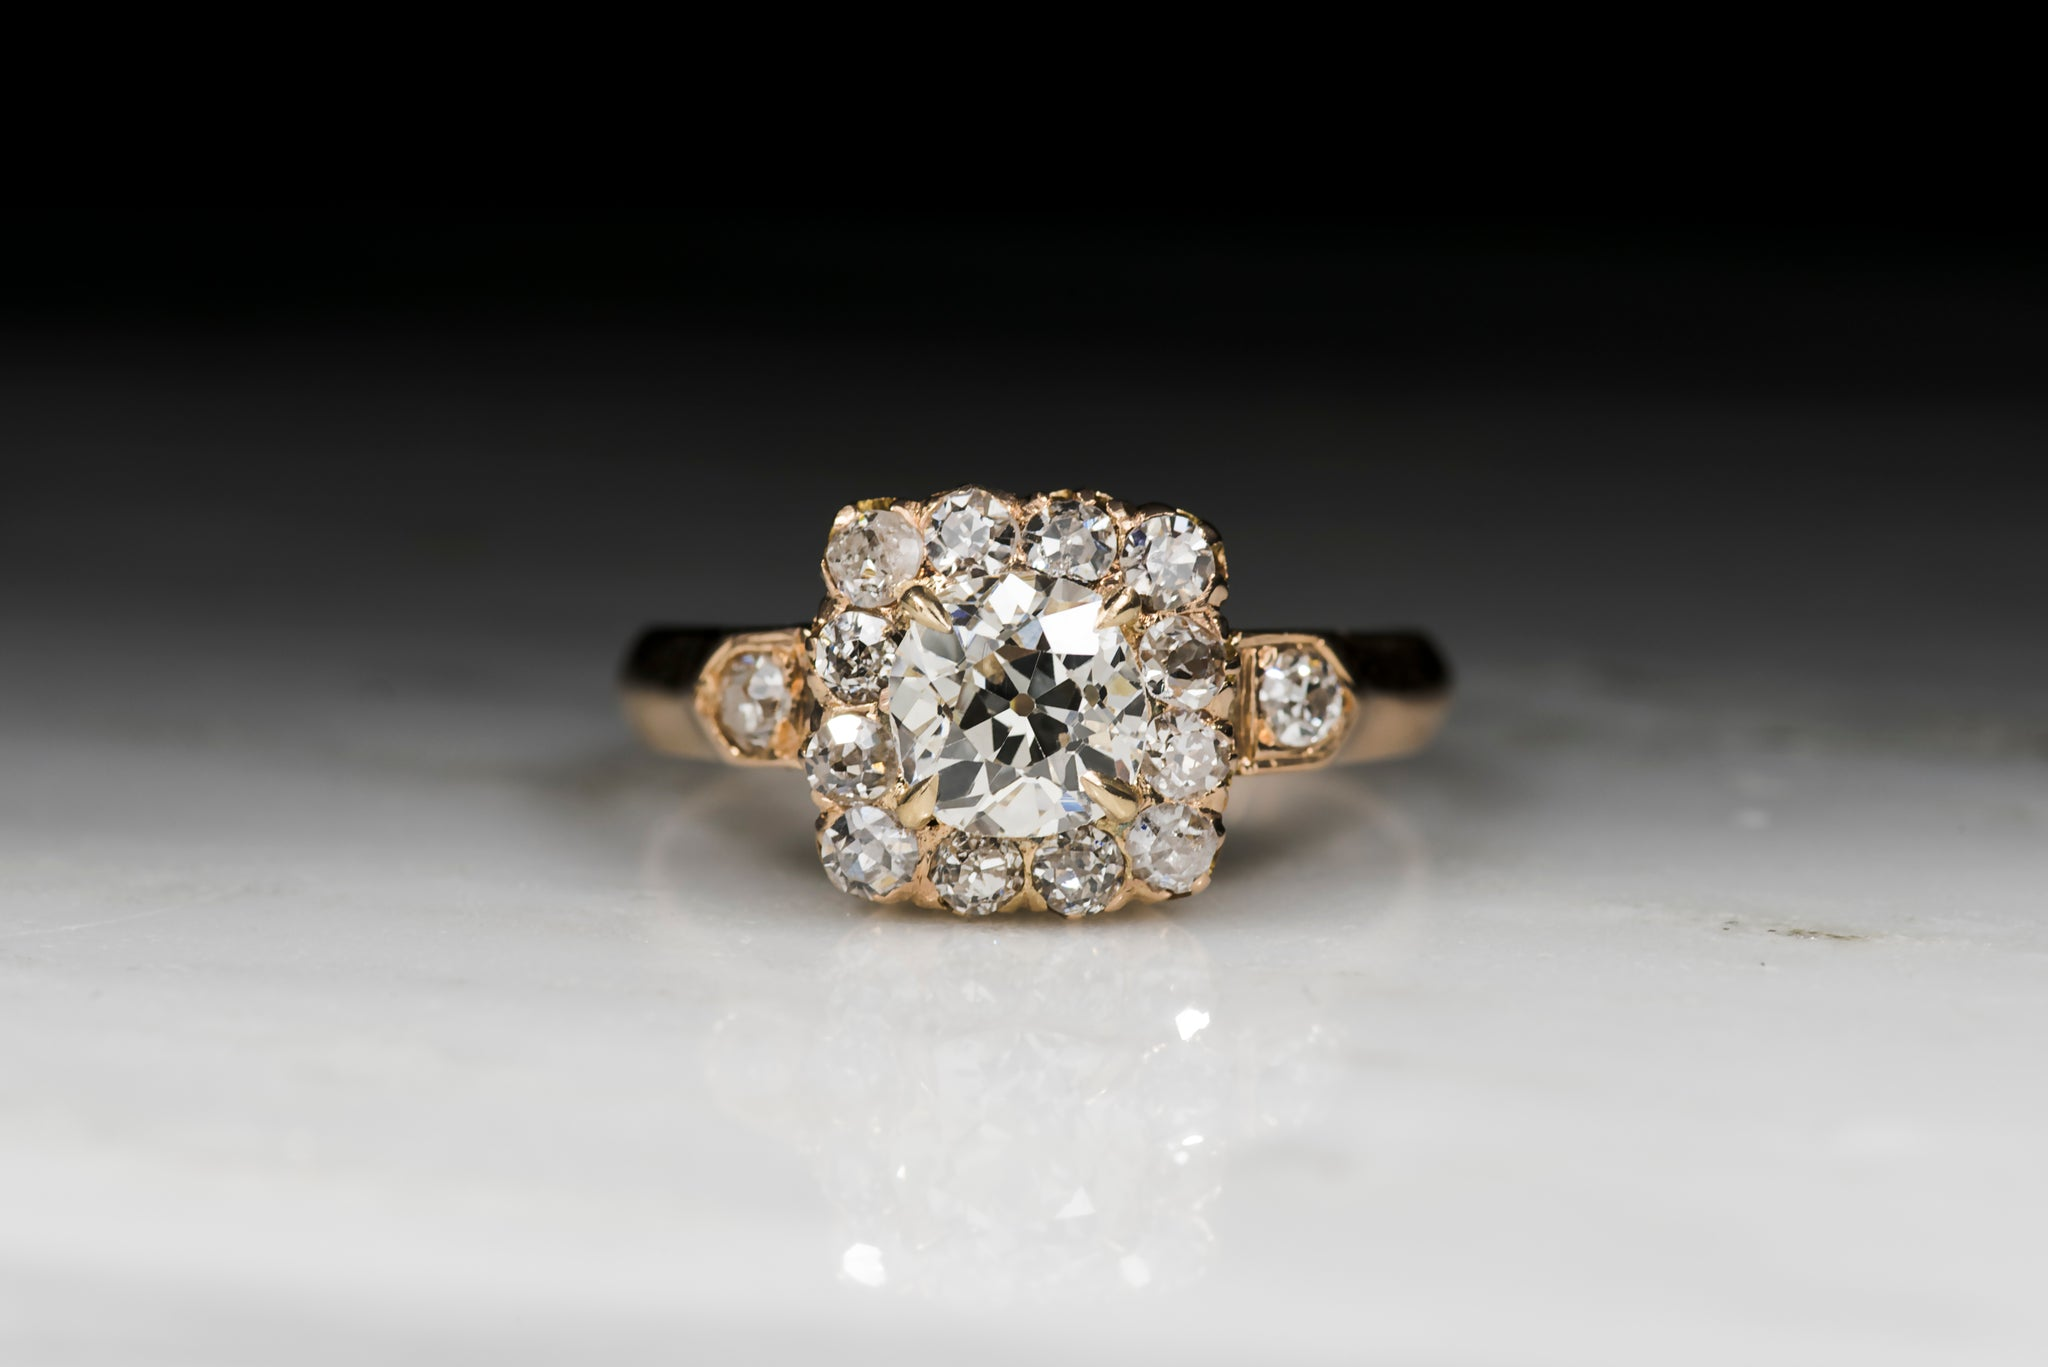 diamond h center s itm cushion nice loading rings cut image ring is ct engagement stone square